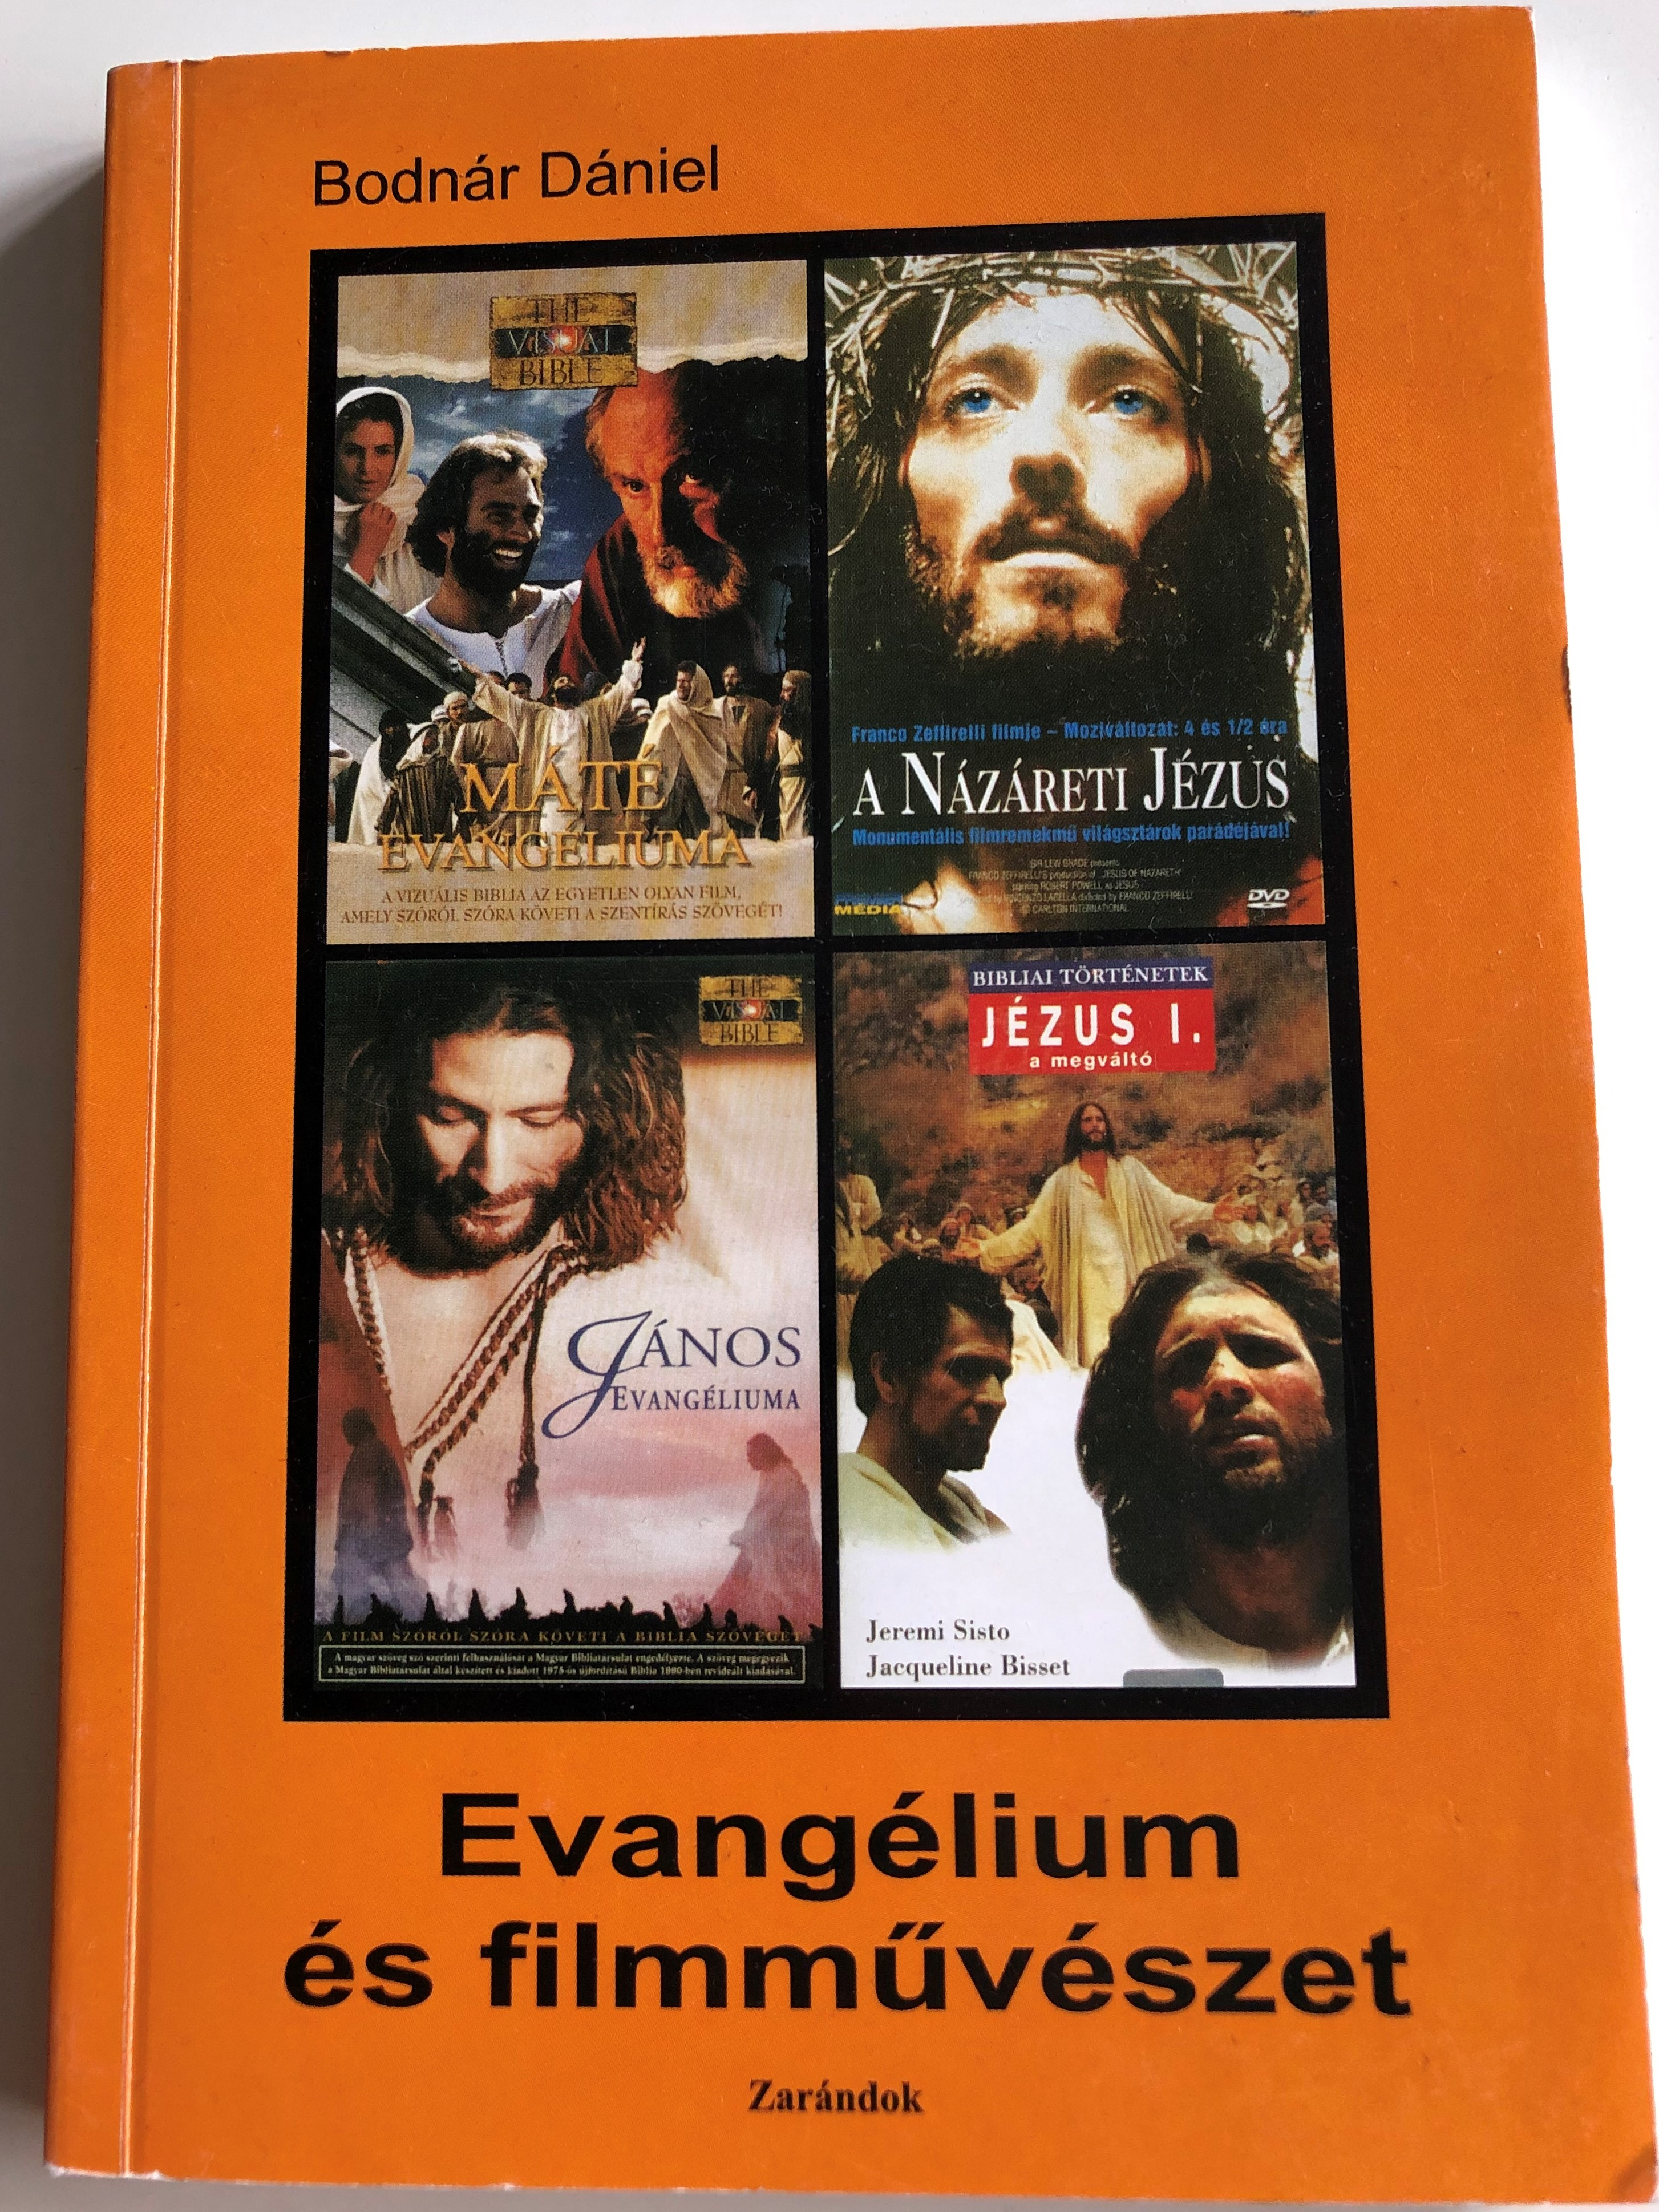 evang-lium-s-filmm-v-szet-by-bodn-r-d-niel-the-gospel-and-filmmaking-the-book-is-summarizing-the-life-of-christ-as-it-appeared-in-the-film-industry-1-.jpg